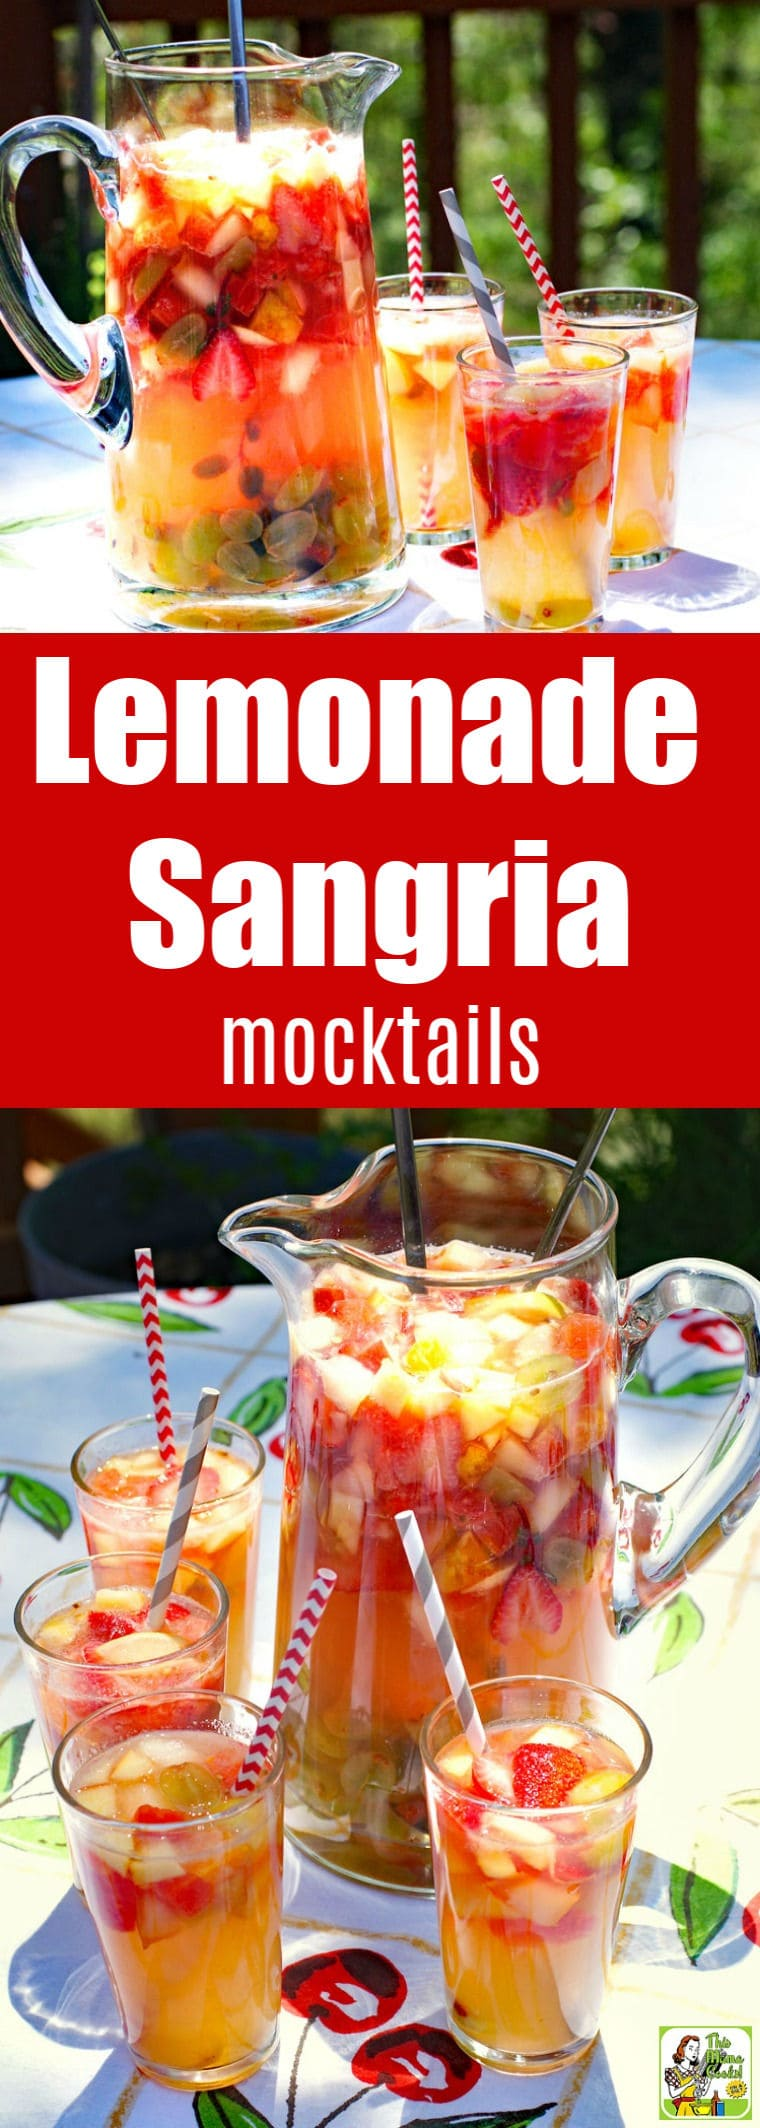 Serve up a pitcher of Lemonade Sangria mocktails at your next party. This non-alcoholic sangria is a better-for-you alternative to beer or wine. It's a mock sangria recipe that's a combination of fruit, lemonade and limeade juices, and sparkling apple juice. #mocktails #drinks #drinking #recipes #recipe #fruit #nonalcoholic #juice #lemonade #sangria